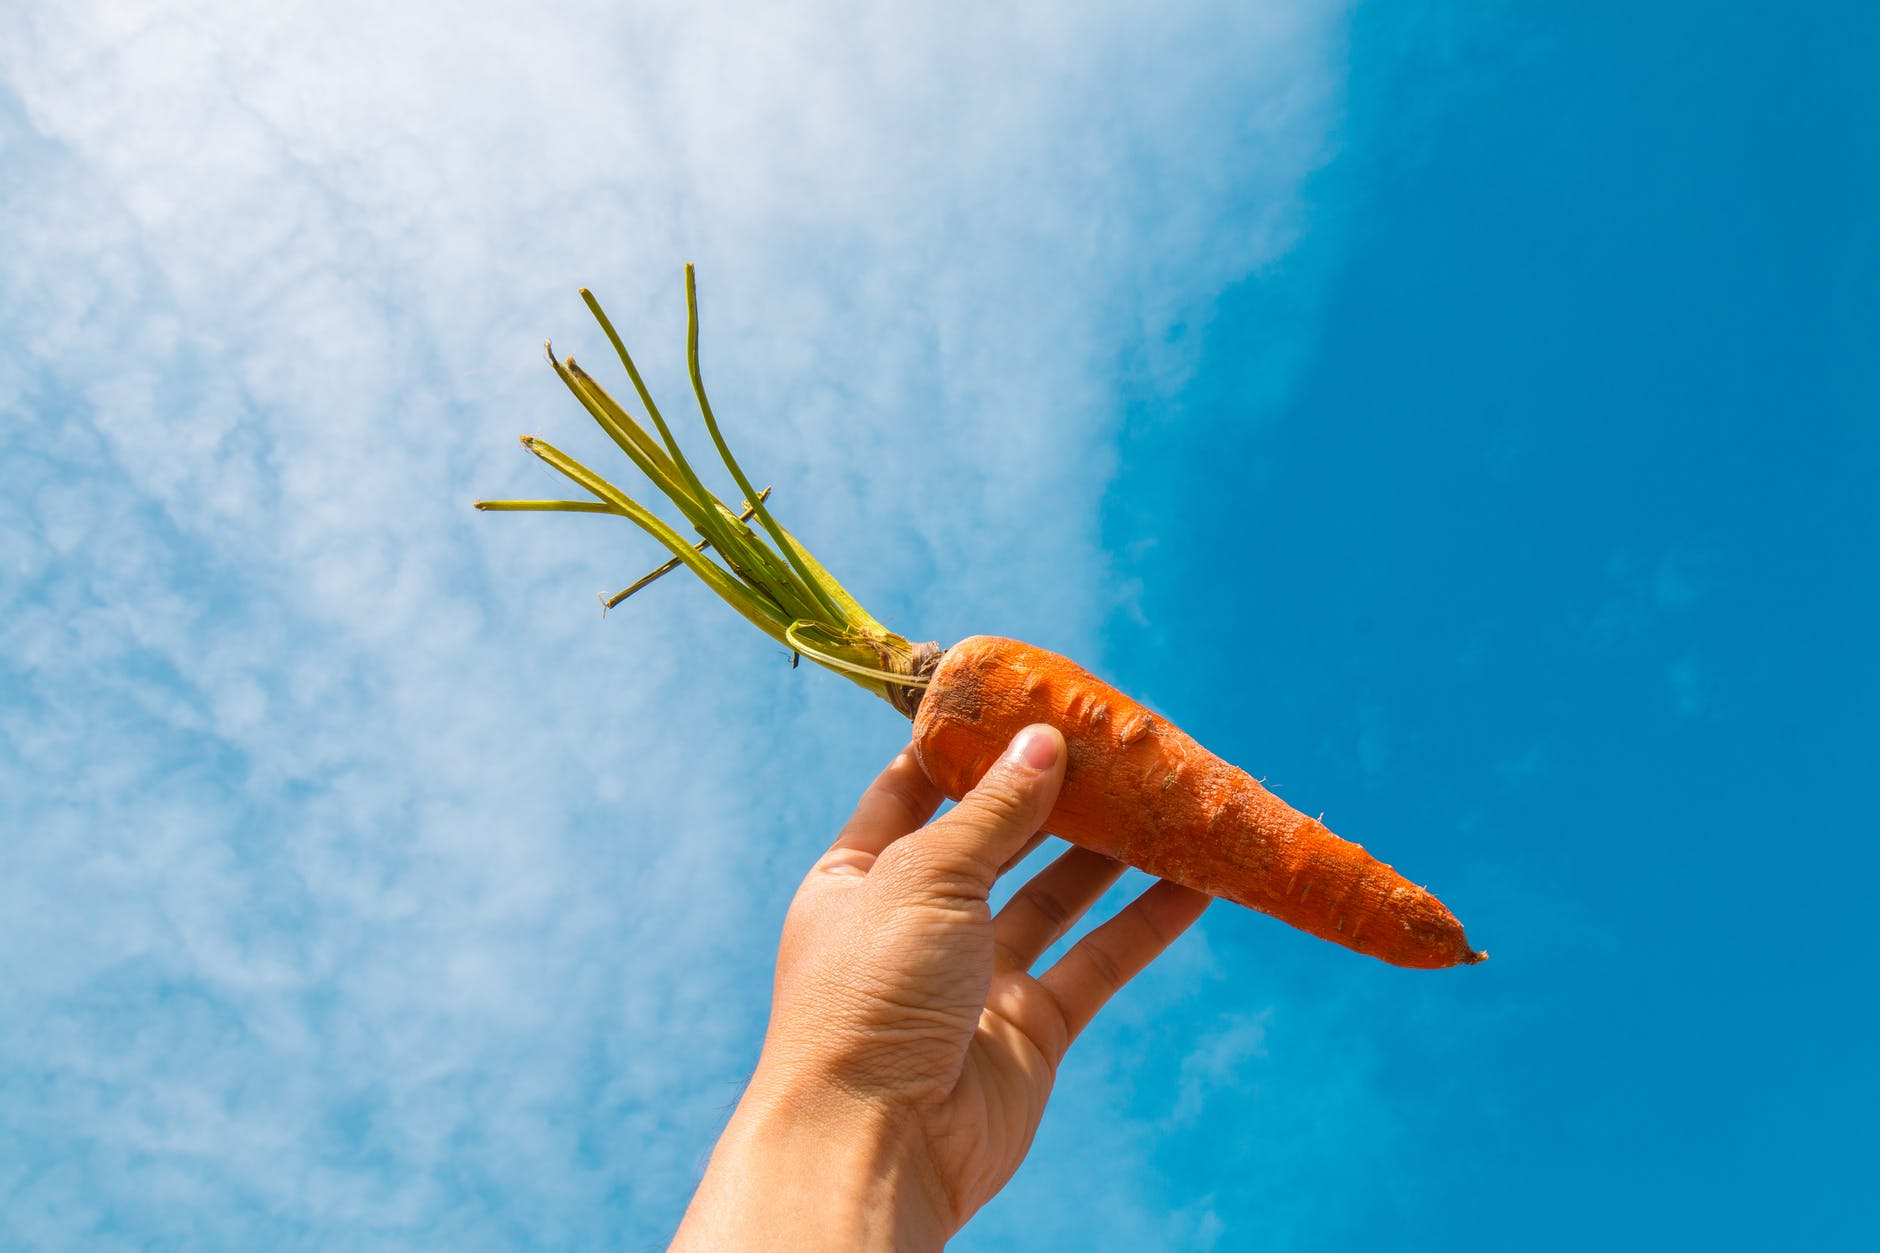 hand holding a carrot up against a blue sky